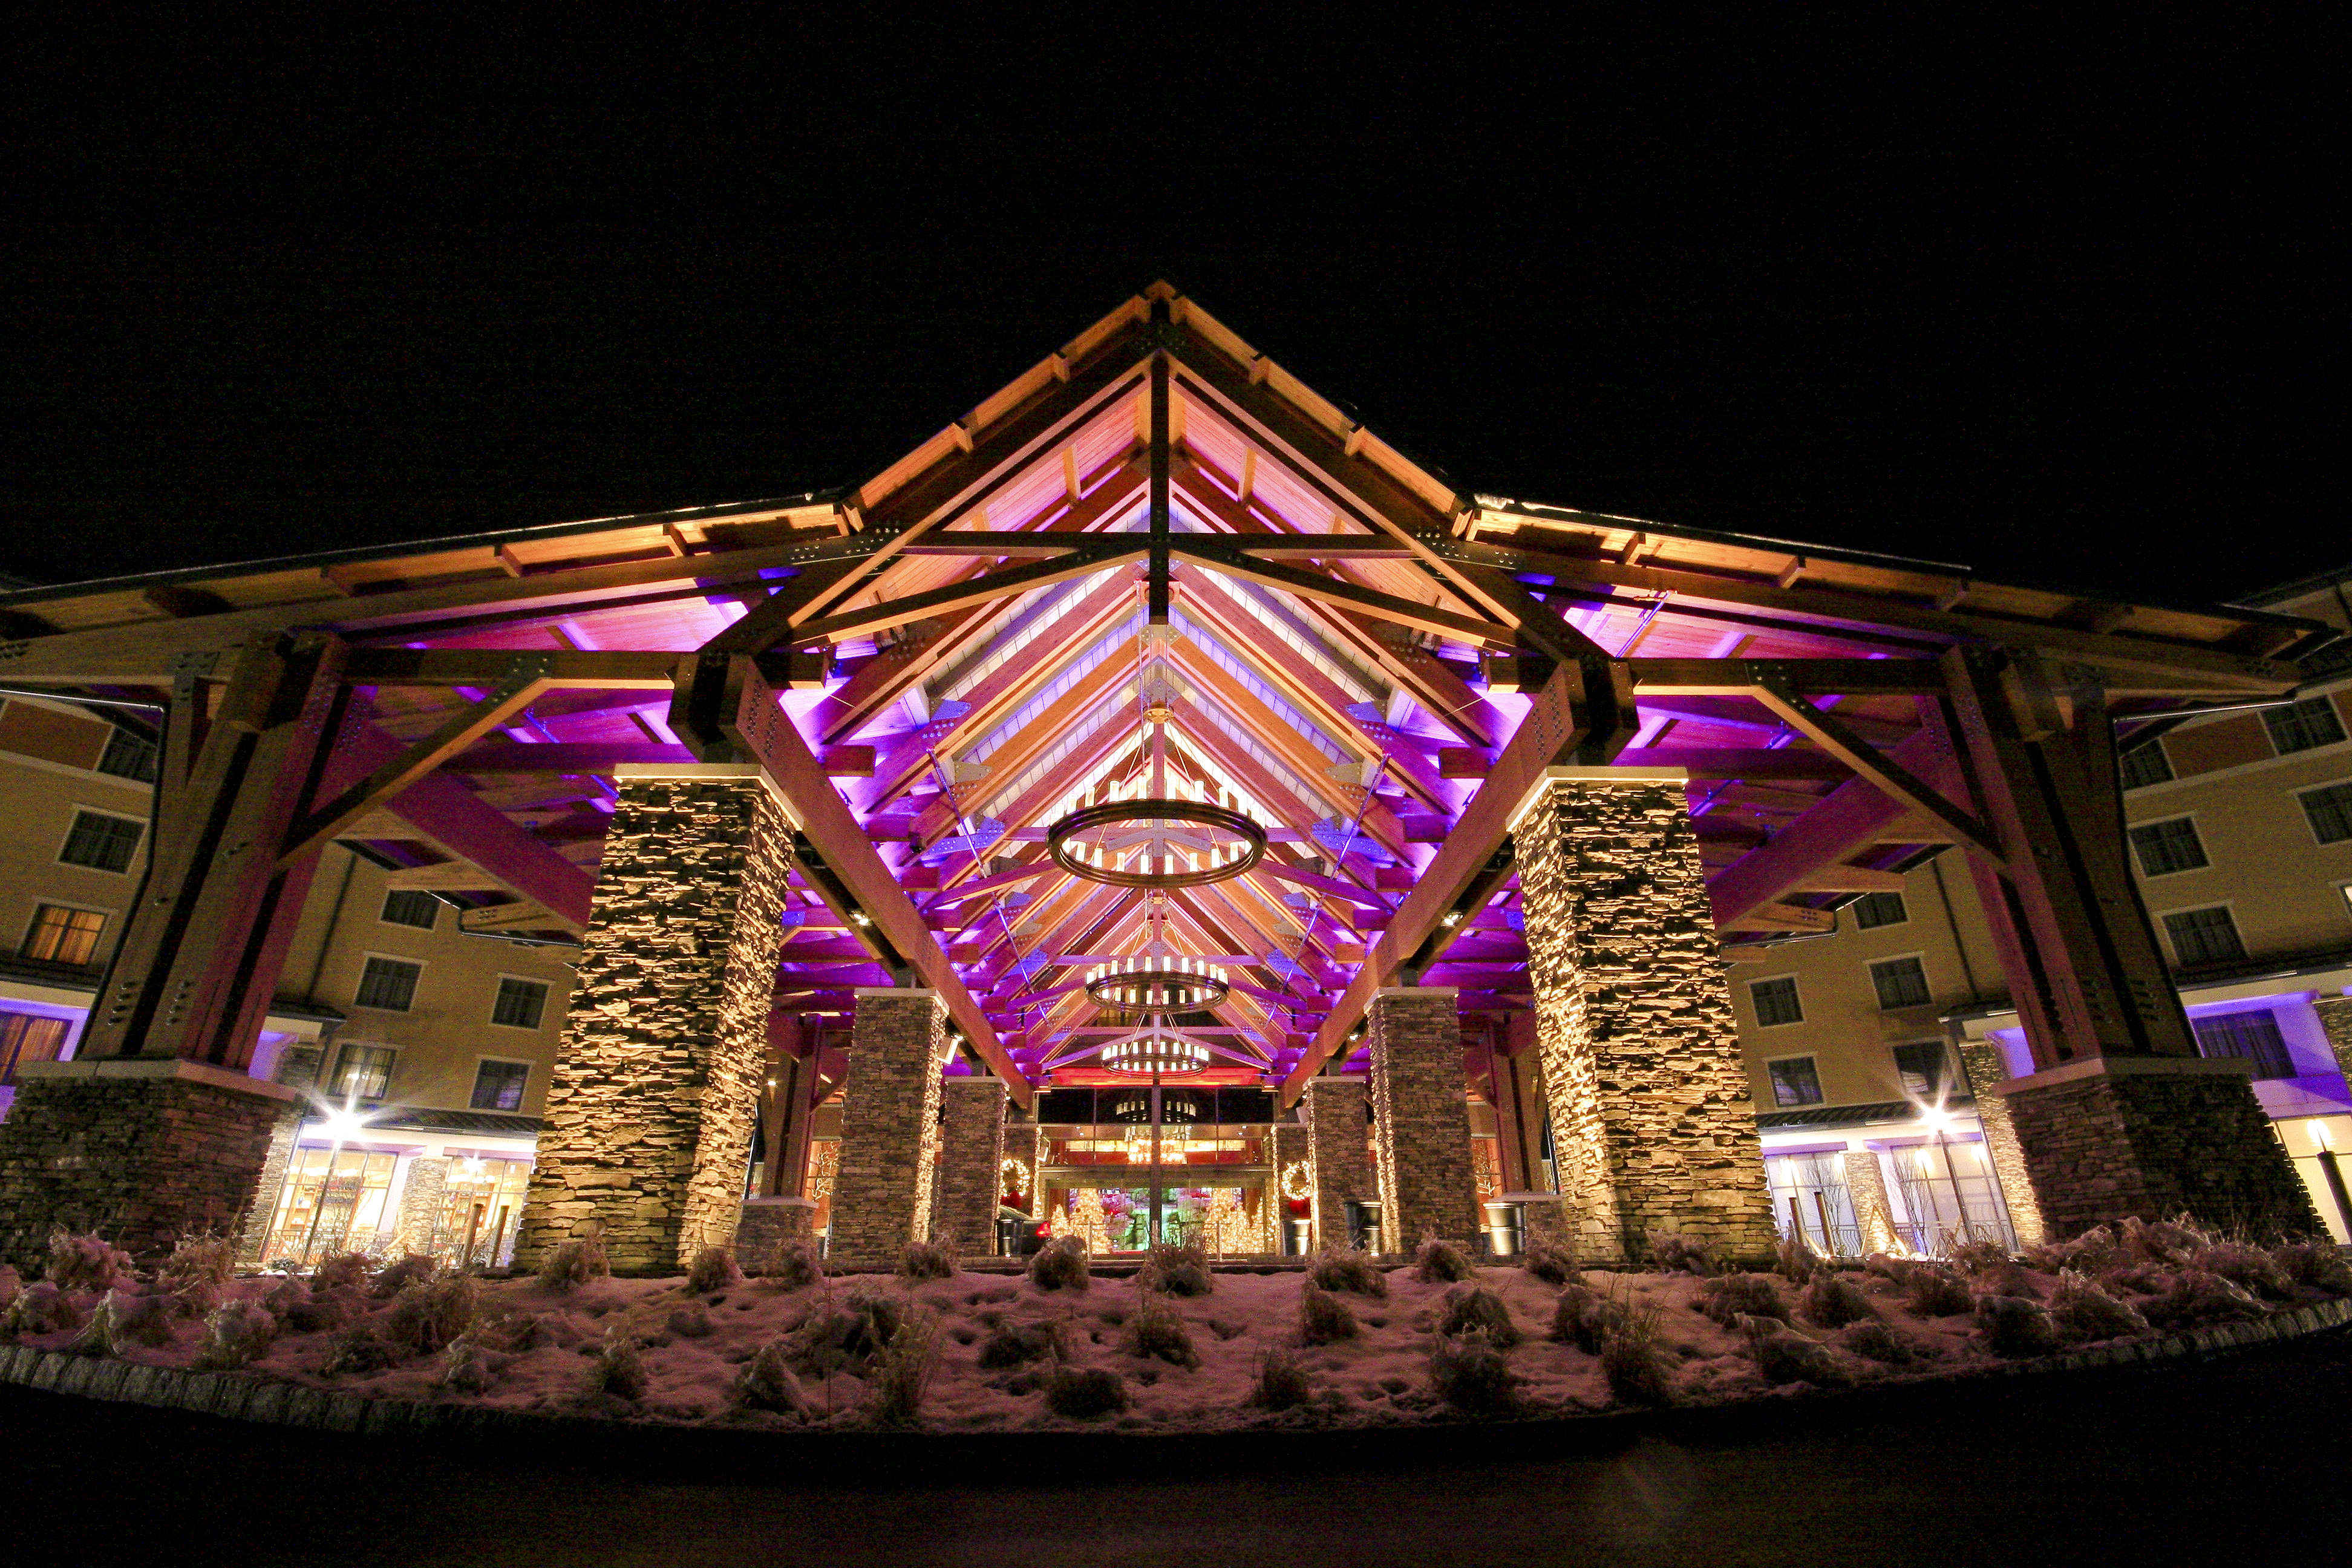 Mount airy casino in pa gratis spill slots machine